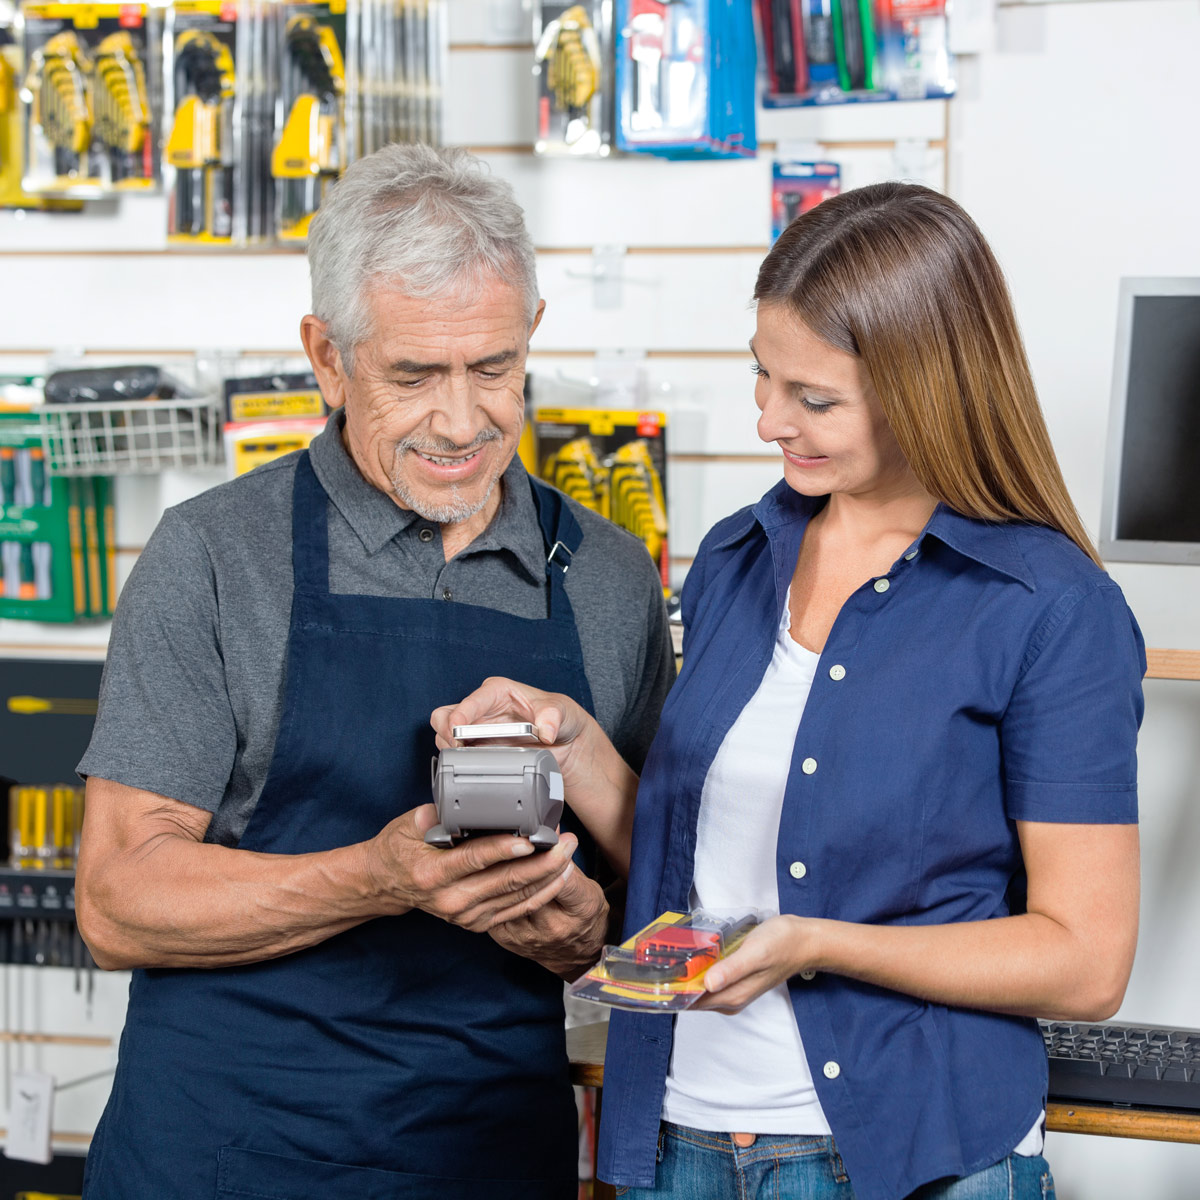 Hardware shop owner reviewing sales receipt with a customer inside store